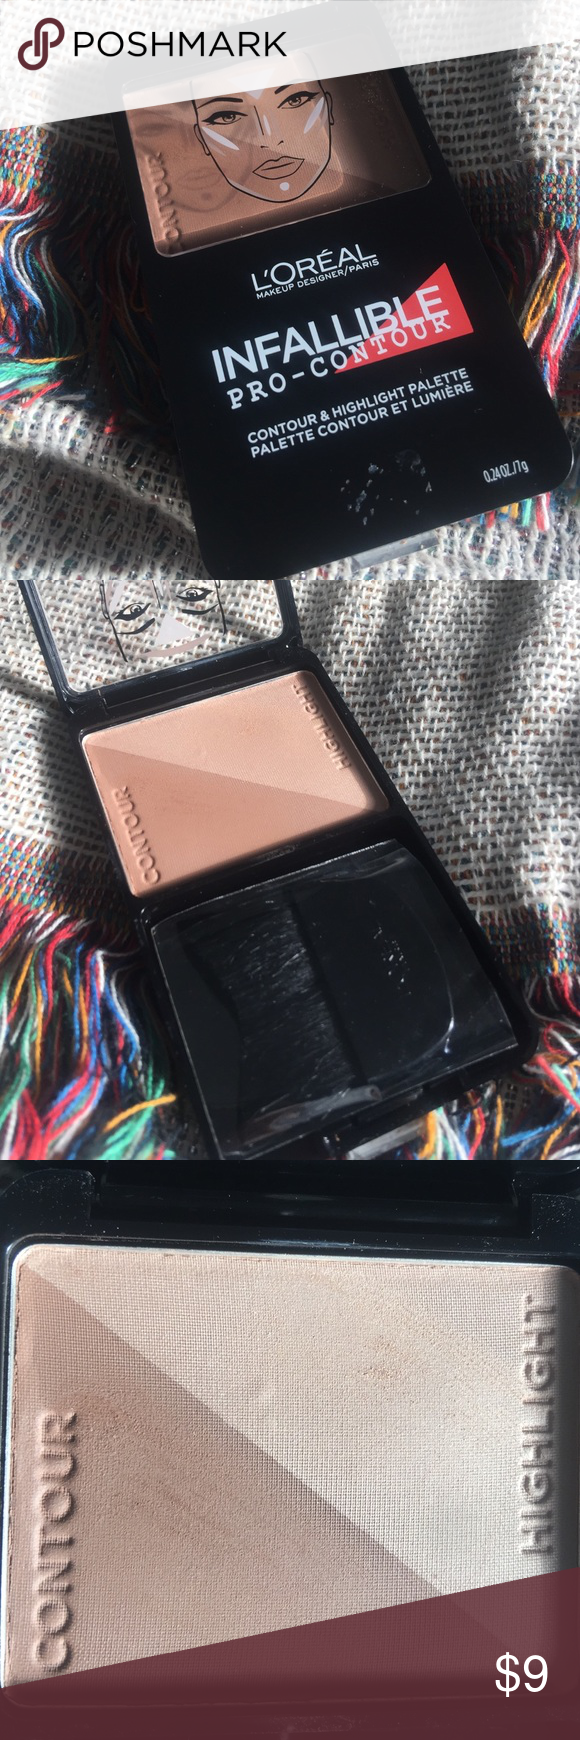 L'Oreal Infallible Pro-Contour Palette in Med 814 NEVER USED comes with brush. Color: Medium 814 L'Oreal Makeup Bronzer